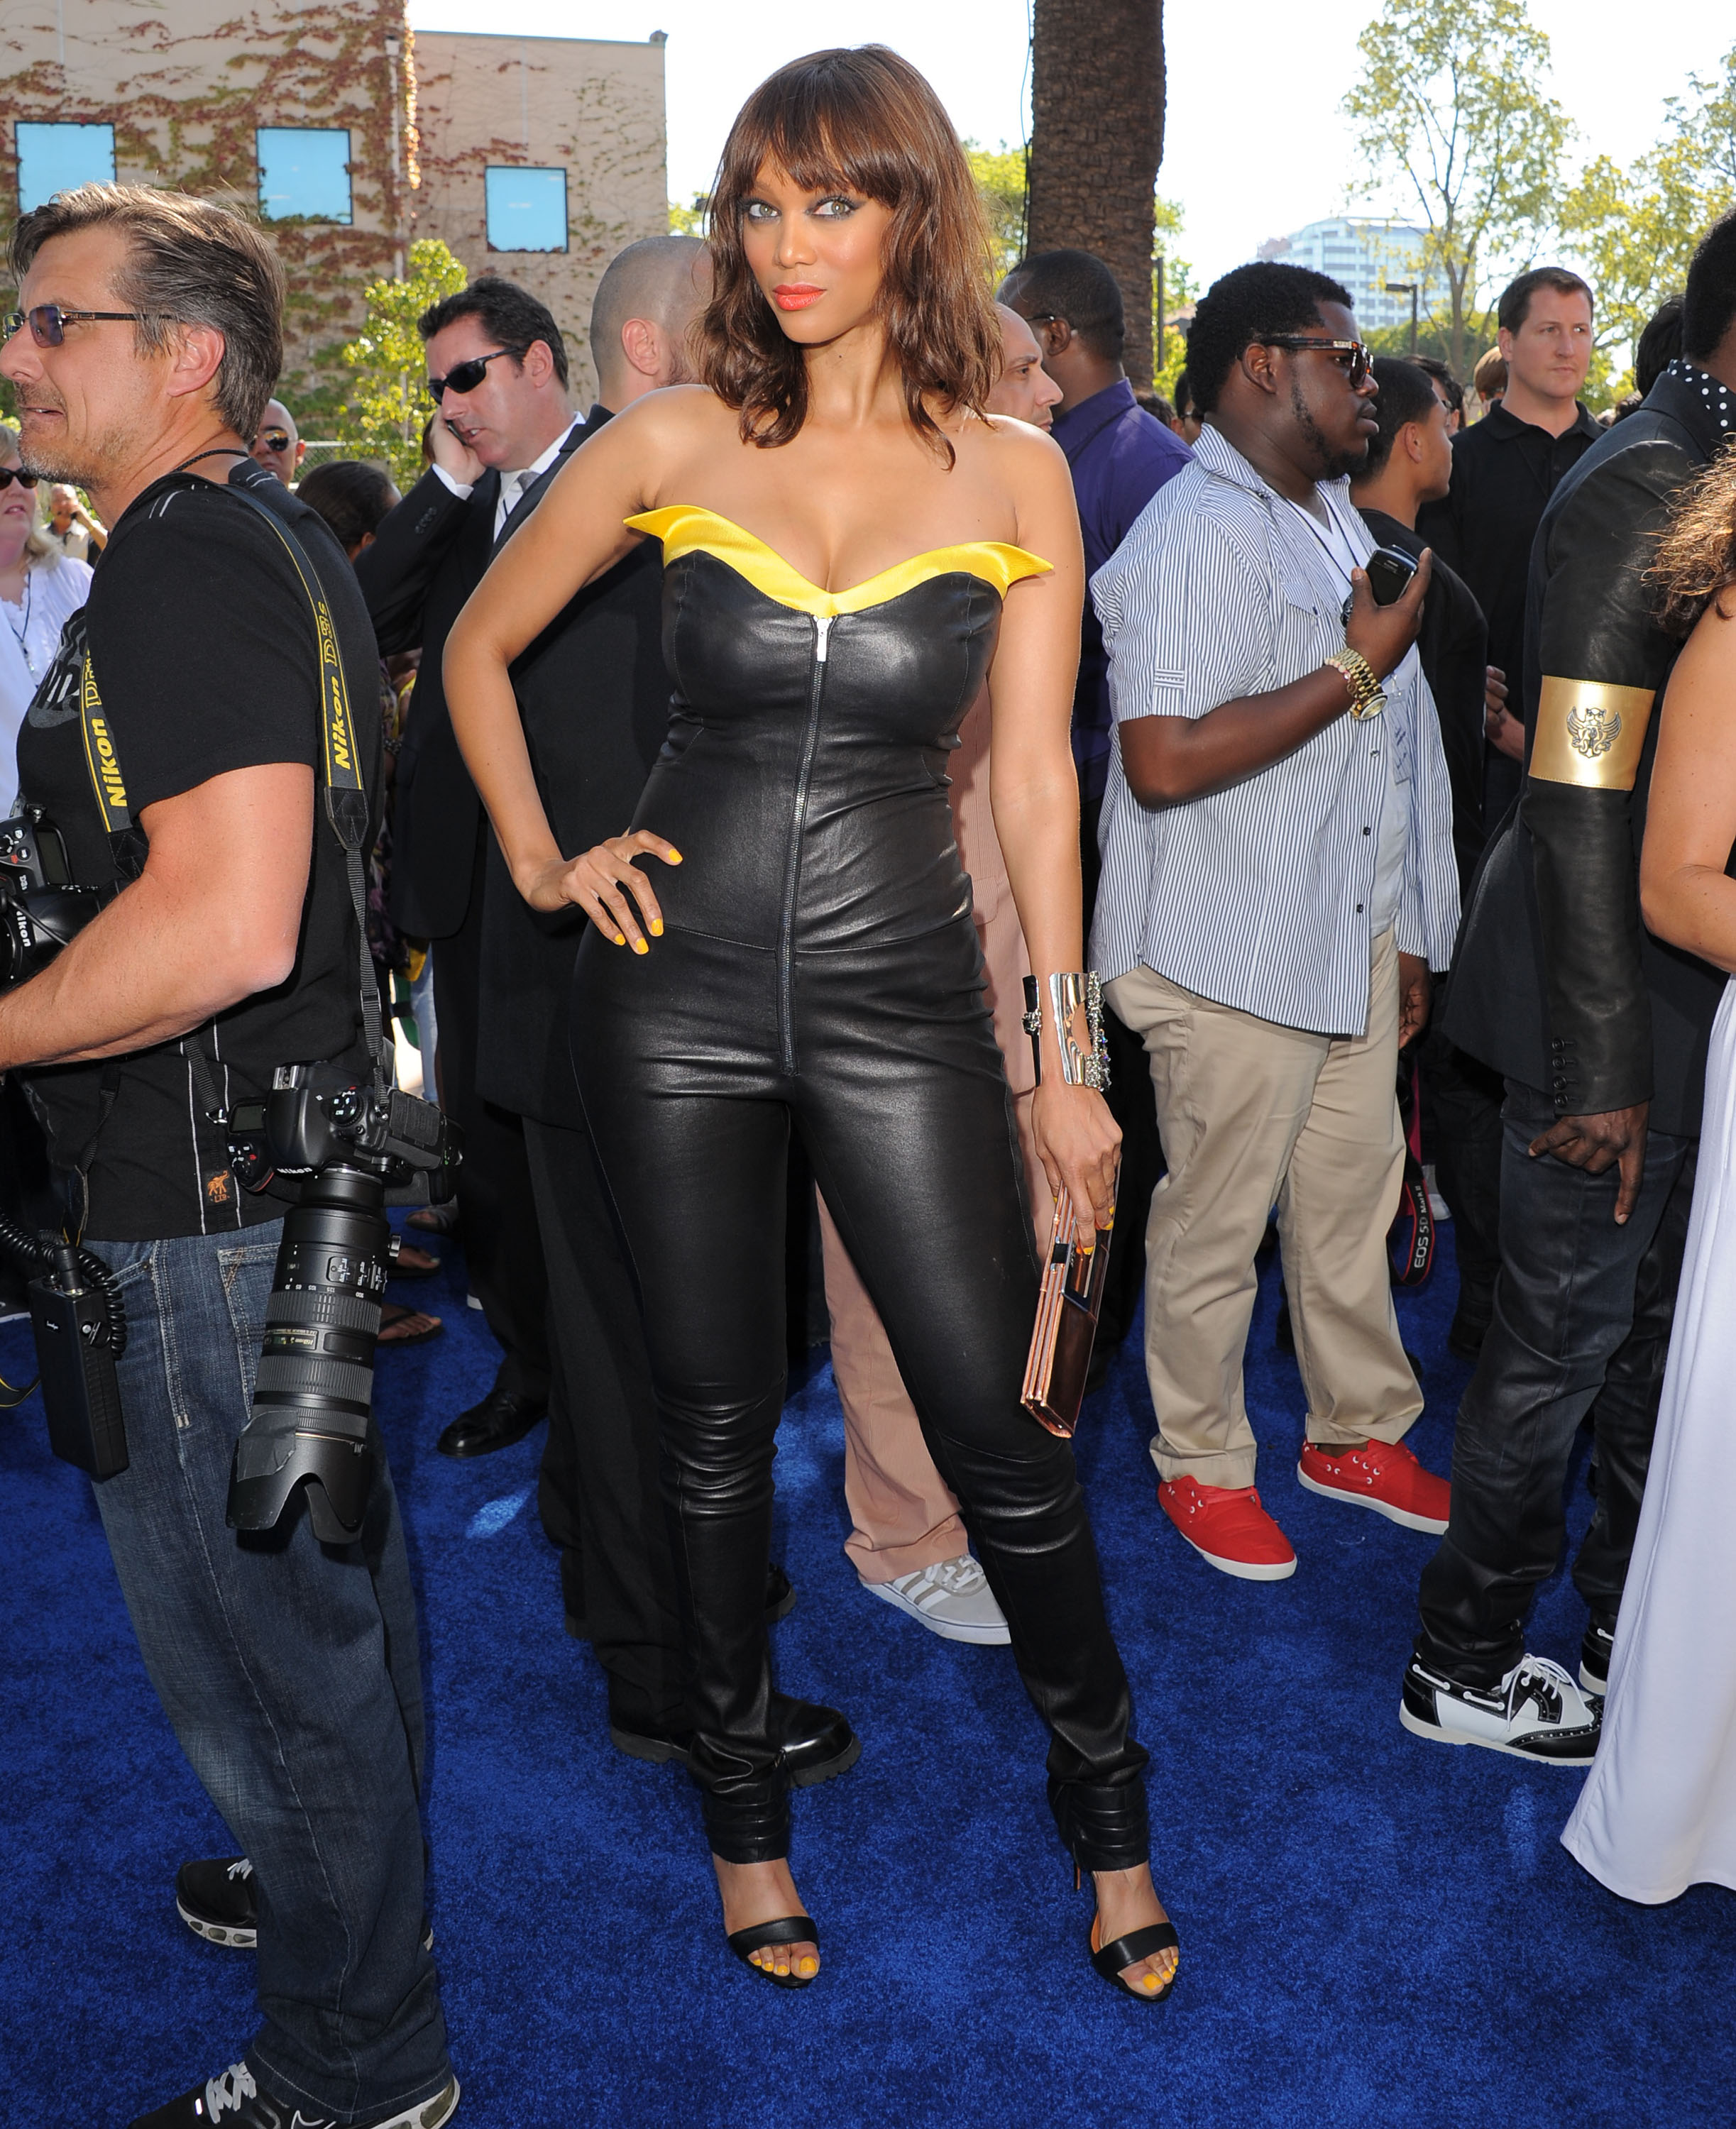 Tyra Banks Awards: 80001 Tyra Banks 2011 Teen Choice Awards (80001_tyra_banks